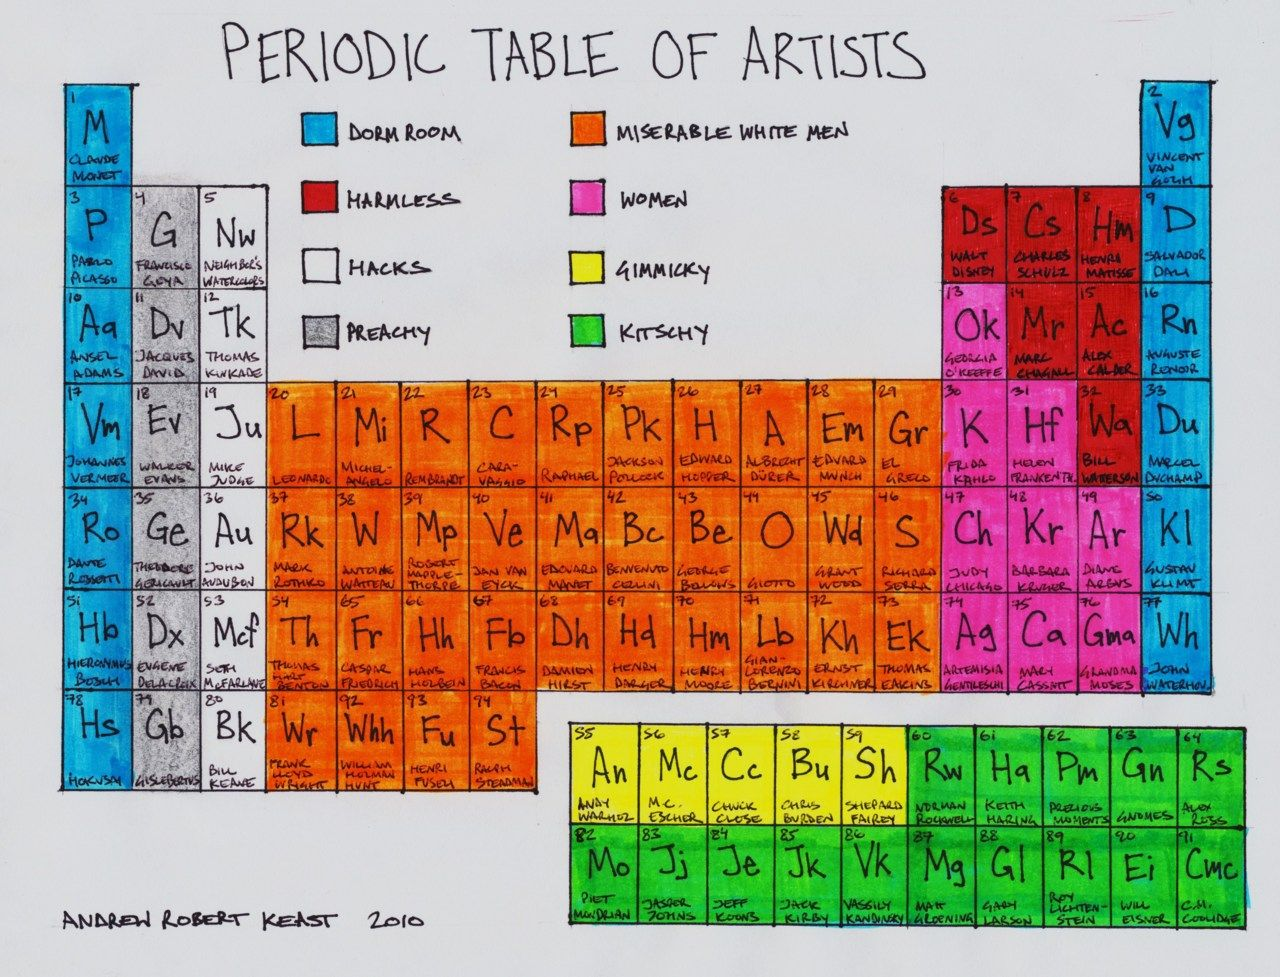 Periodic table of artists how does archimboldo compare where does periodic table of artists how does archimboldo compare where does he fit in with this take on a community of creatives urtaz Choice Image